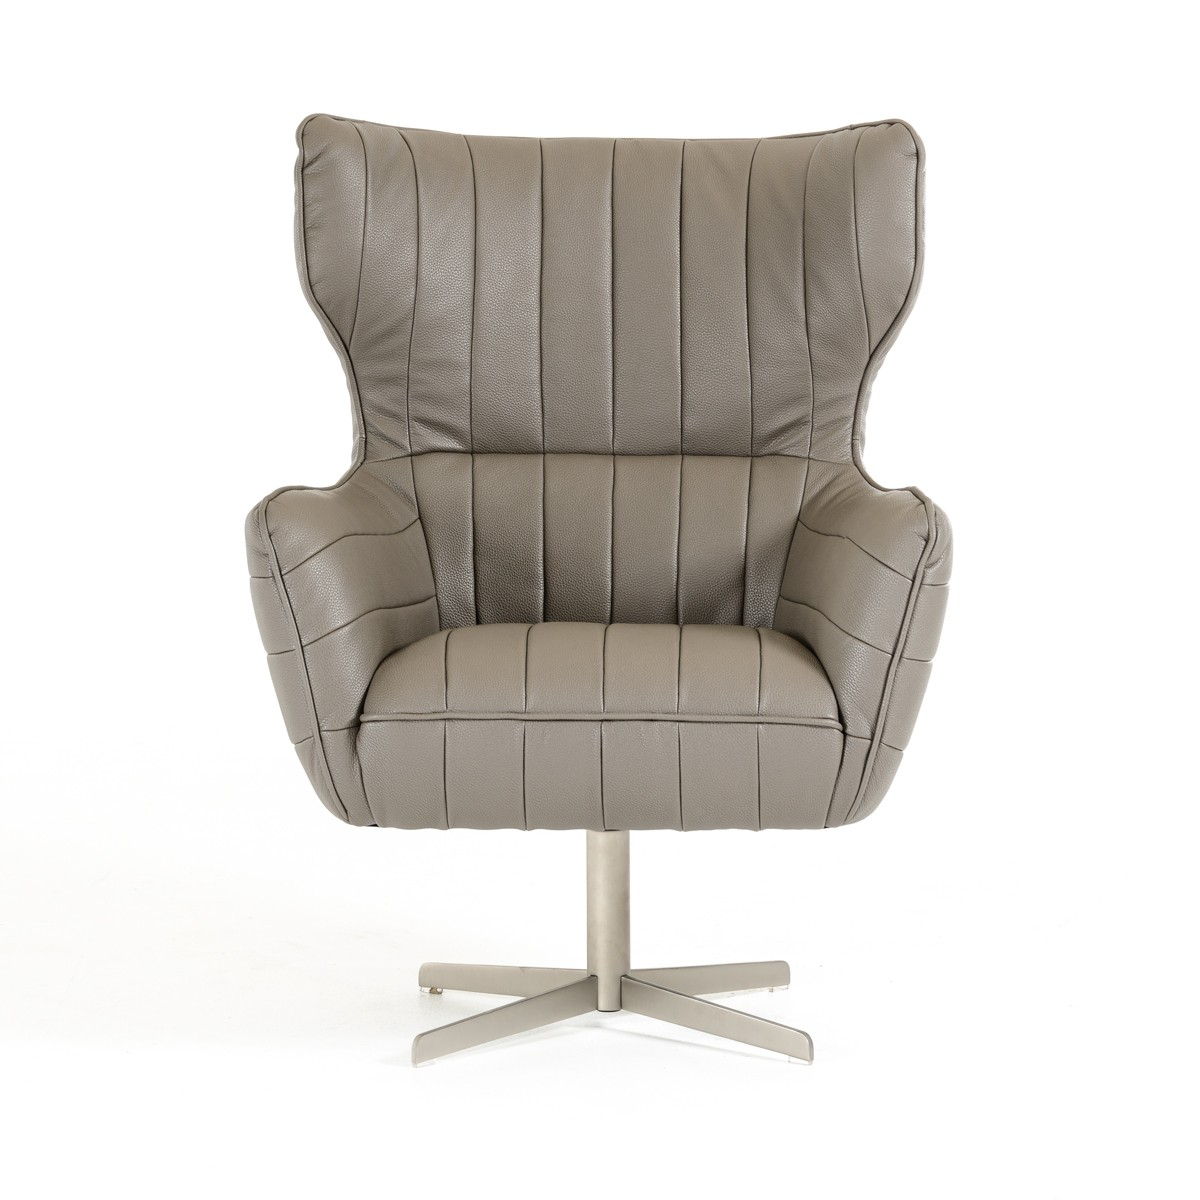 Grey Leather Swivel Accent Chair with Tufting - Click Image to Close